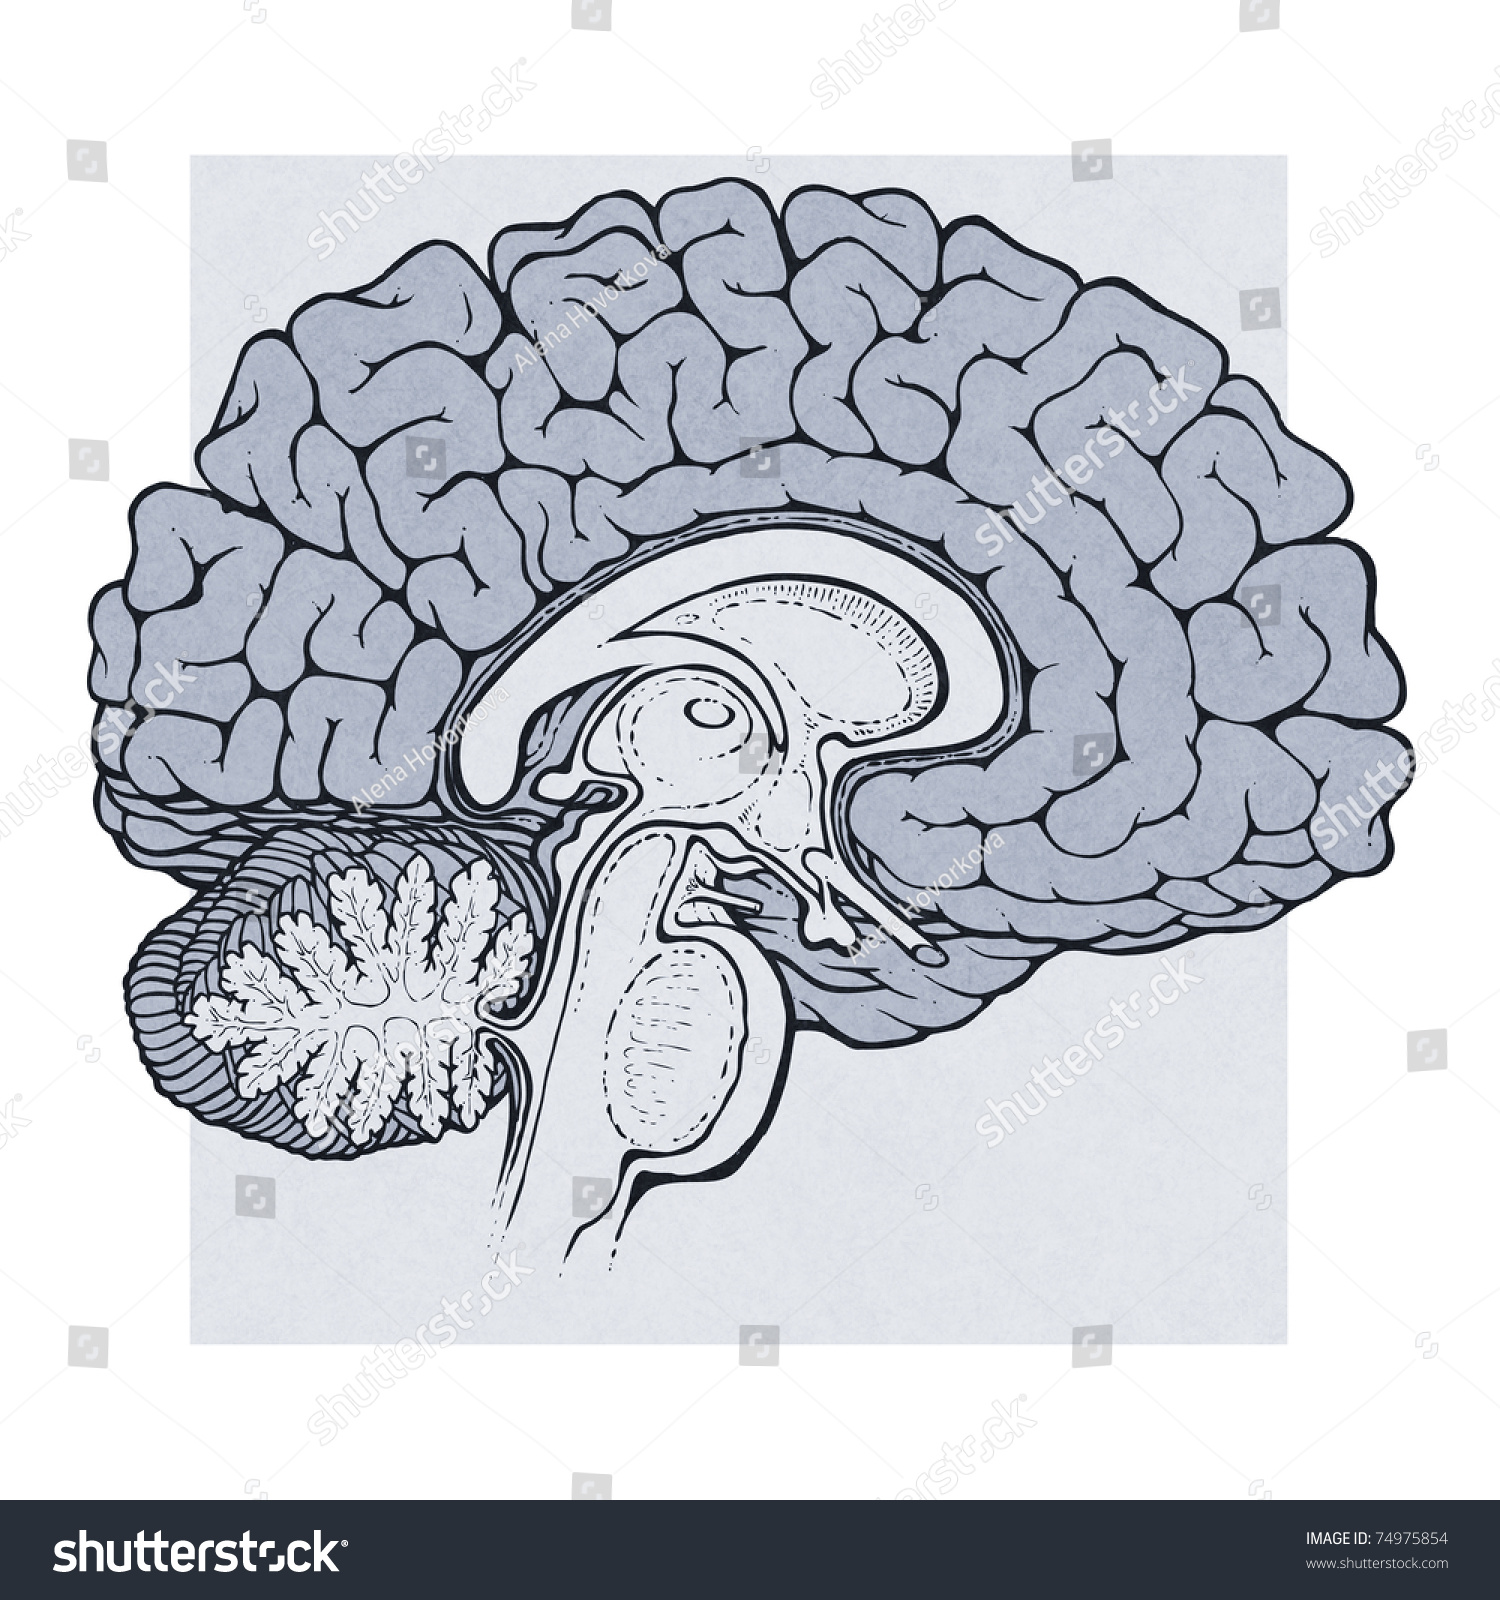 Human Brain Sagittal View Medical Schematic Stock Illustration ...